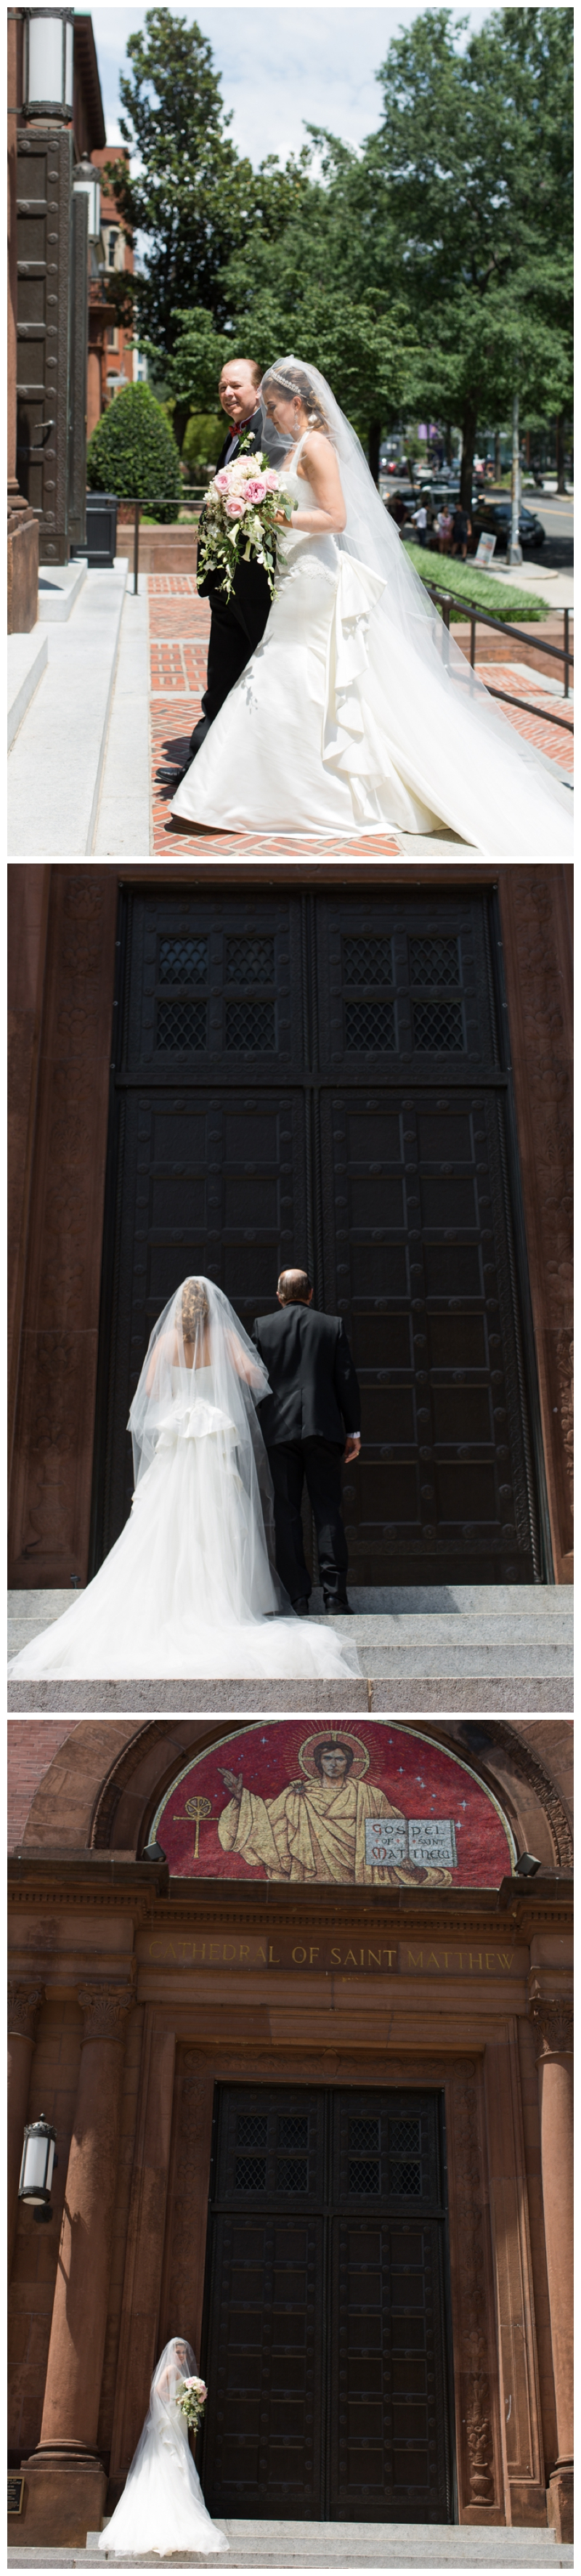 Washington DC Wedding at St Matthew's Cathedral by Rachael Foster Photography_0017.jpg